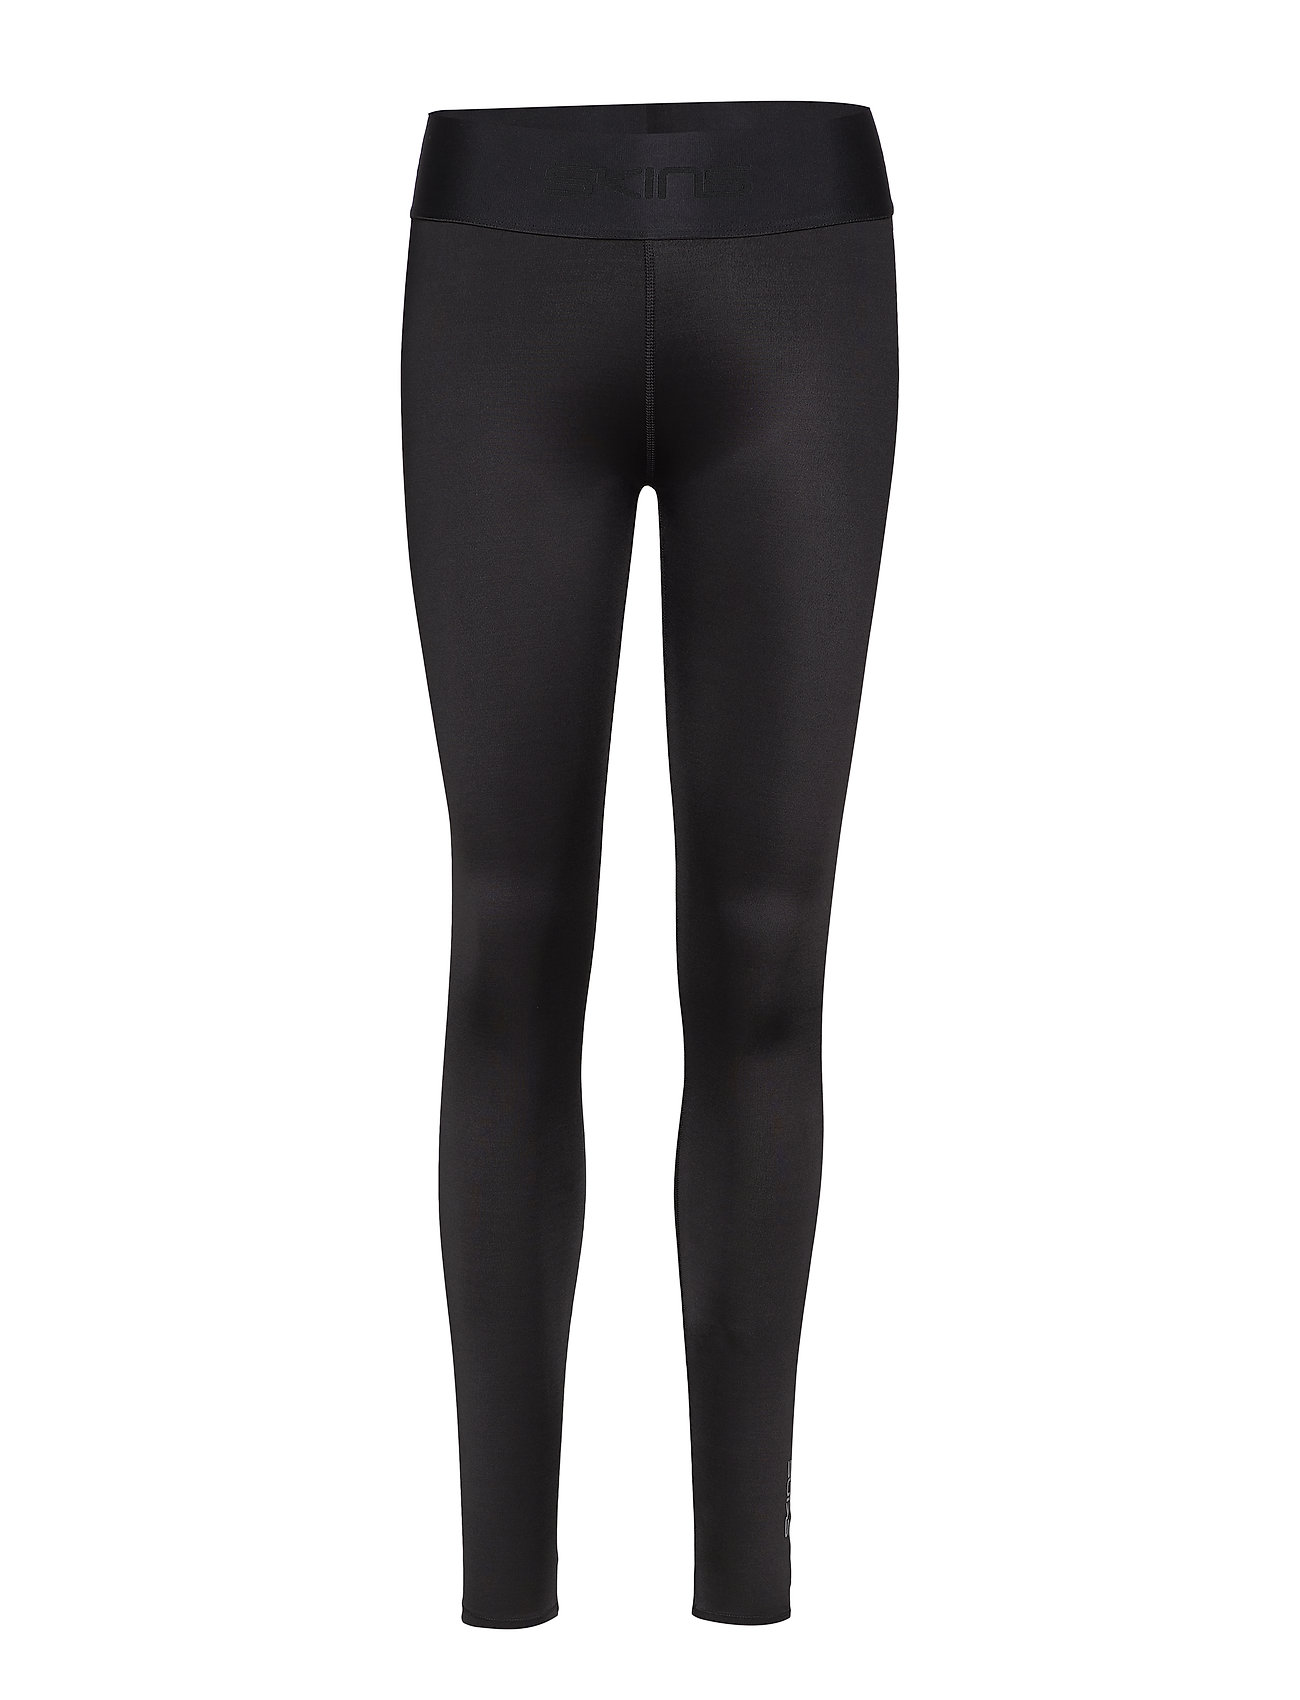 Skins DNAmic Primary Womens Long Tights - BLACK